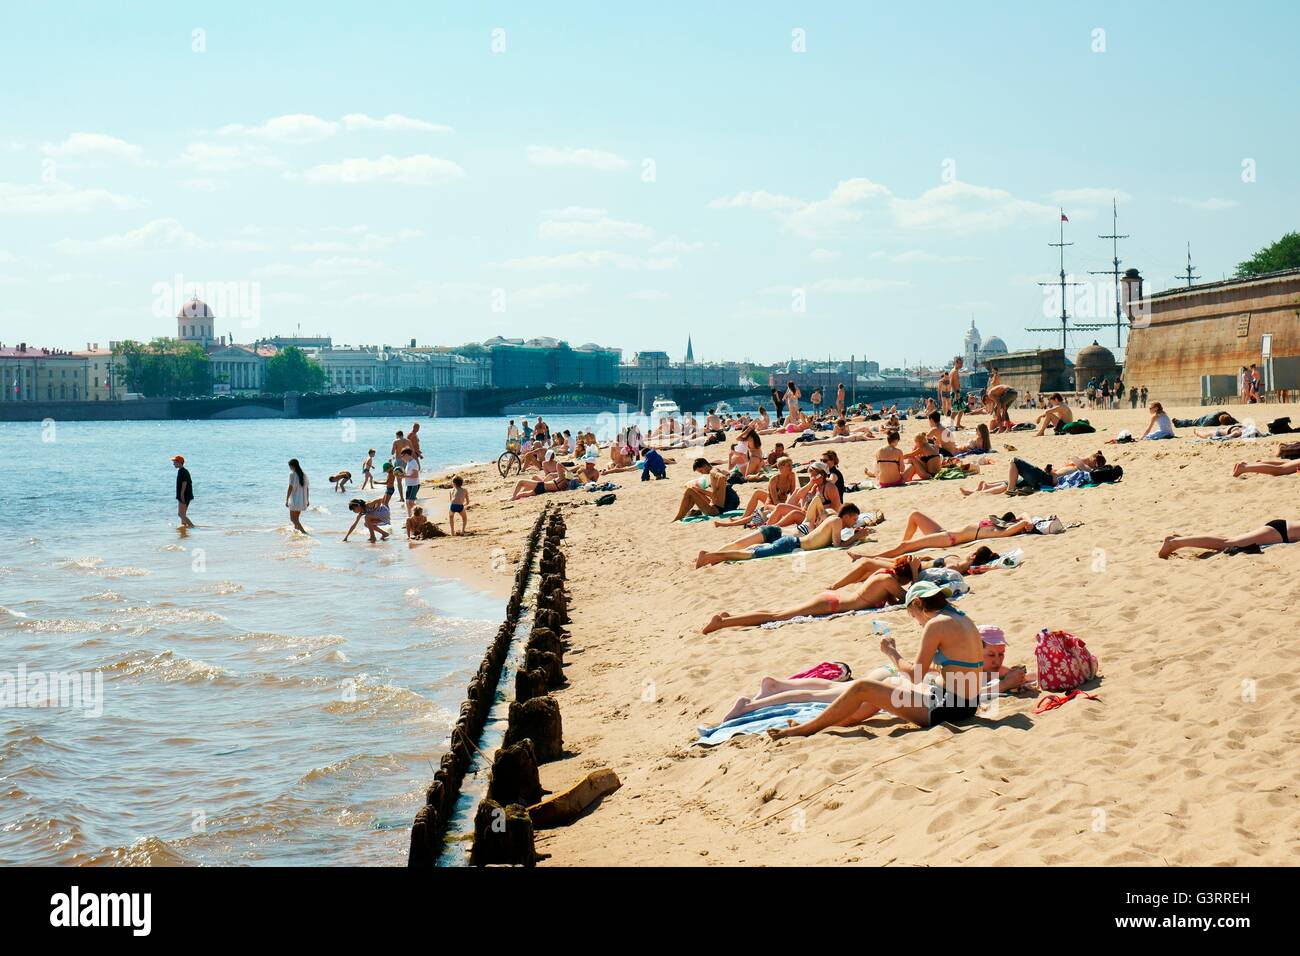 Saint Petersburg Russia. Sunbathing on beach outside the walls of Peter and Paul Fortress on Zayachy Island on the - Stock Image